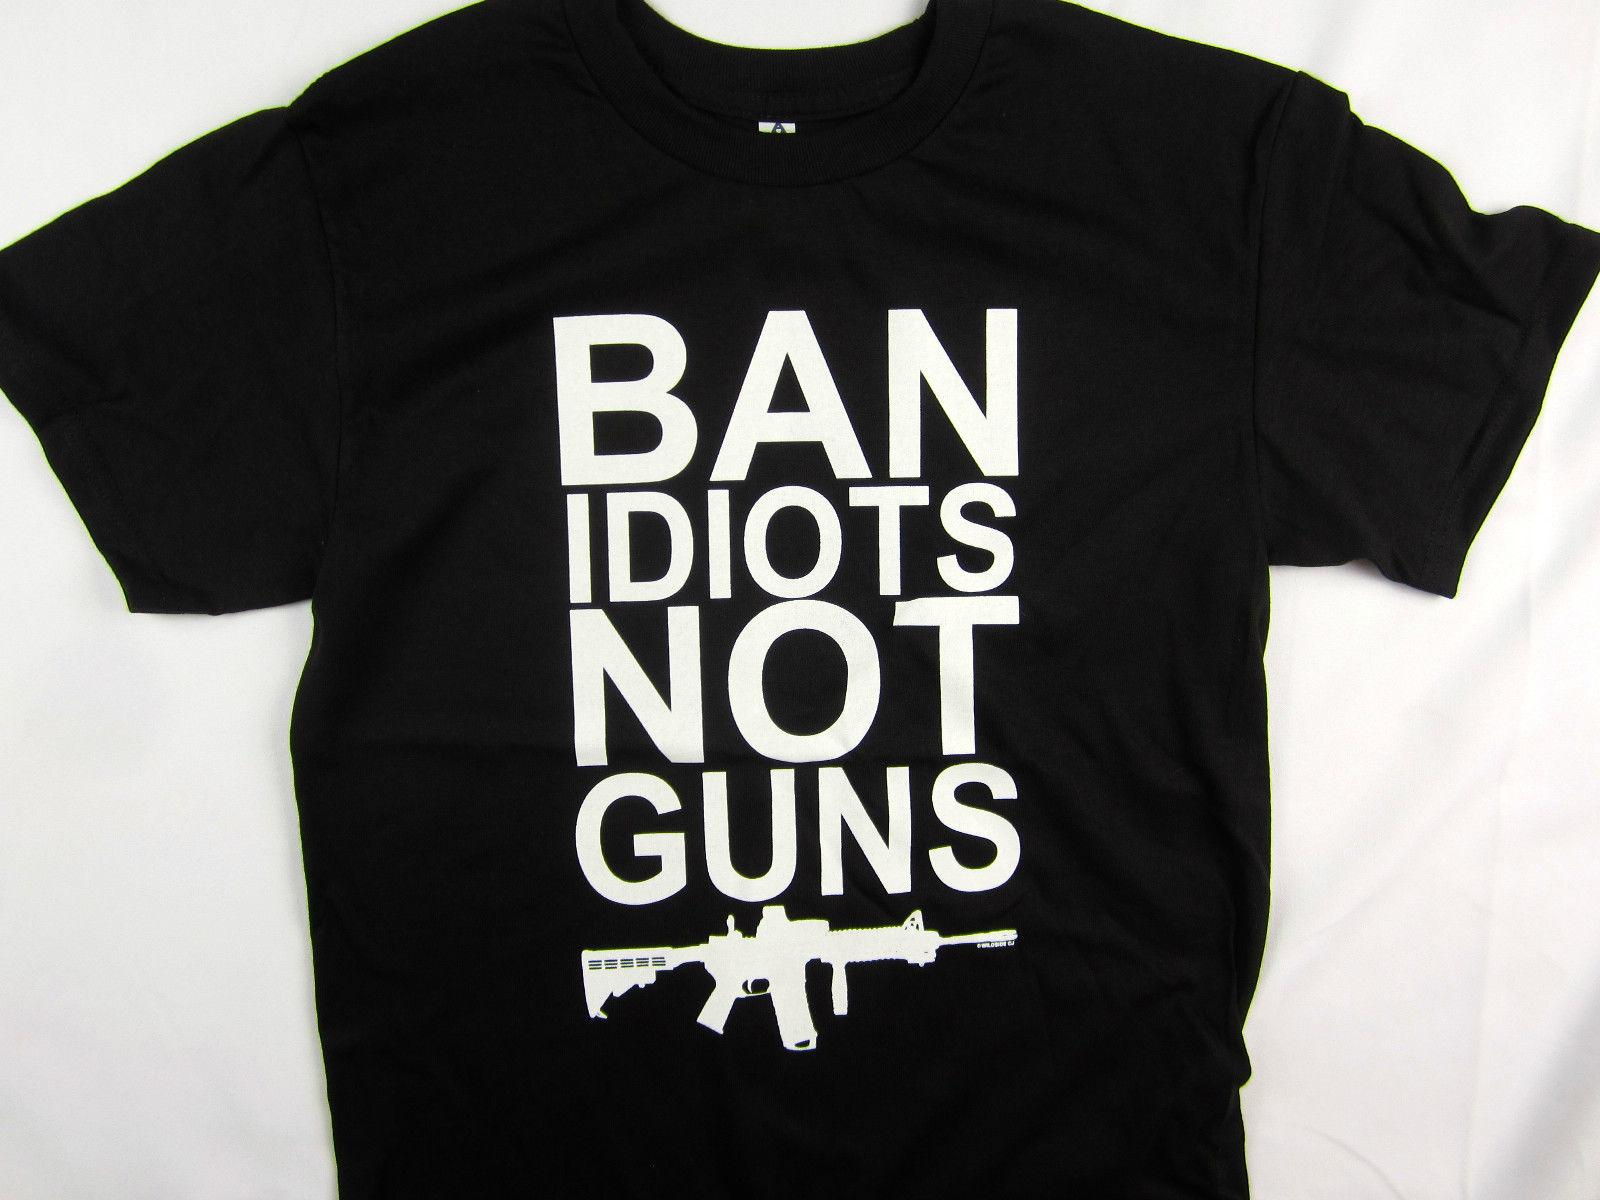 bd4ad646 Ban Idiots Not Guns AR-15 2A humor men's Tee shirt black choose your size  2018 Funny Tee ,Cute T shirts Man ,100% Cotton Cool ,